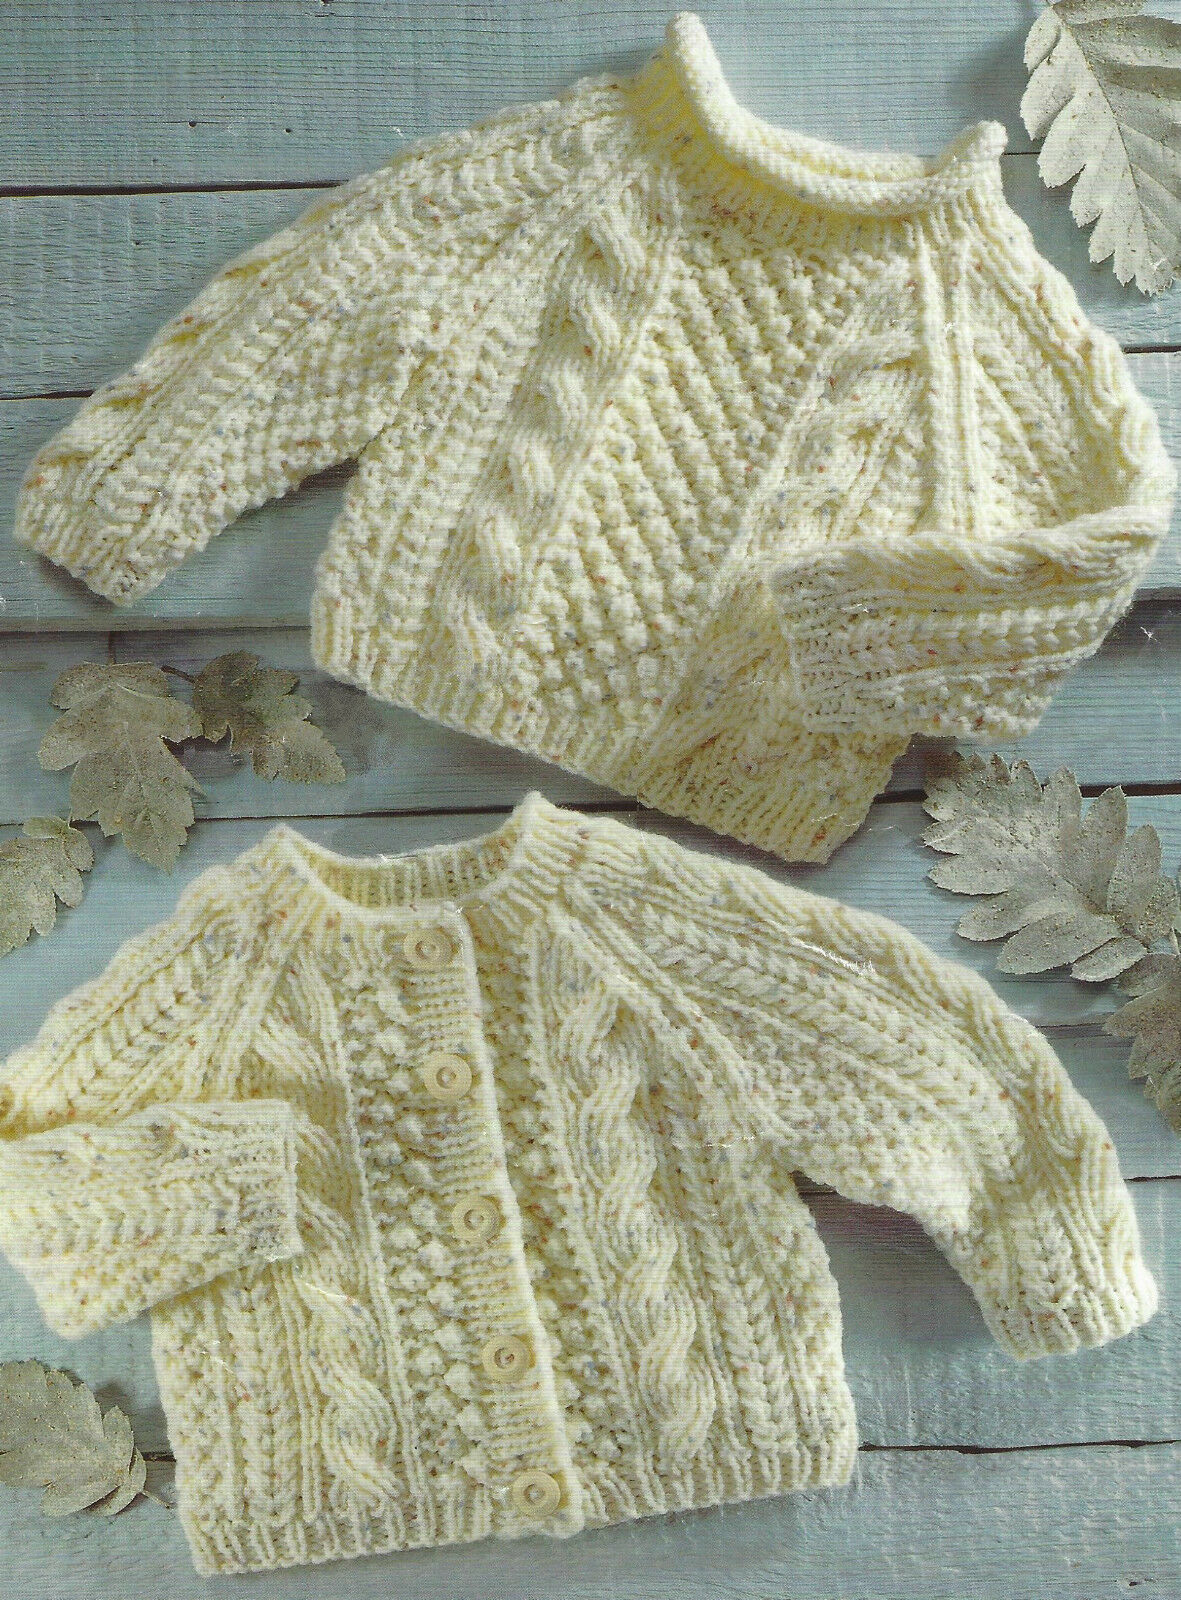 Aran Knitting Pattern Cardigan Sweater with cables Baby Girls Boys 16-26